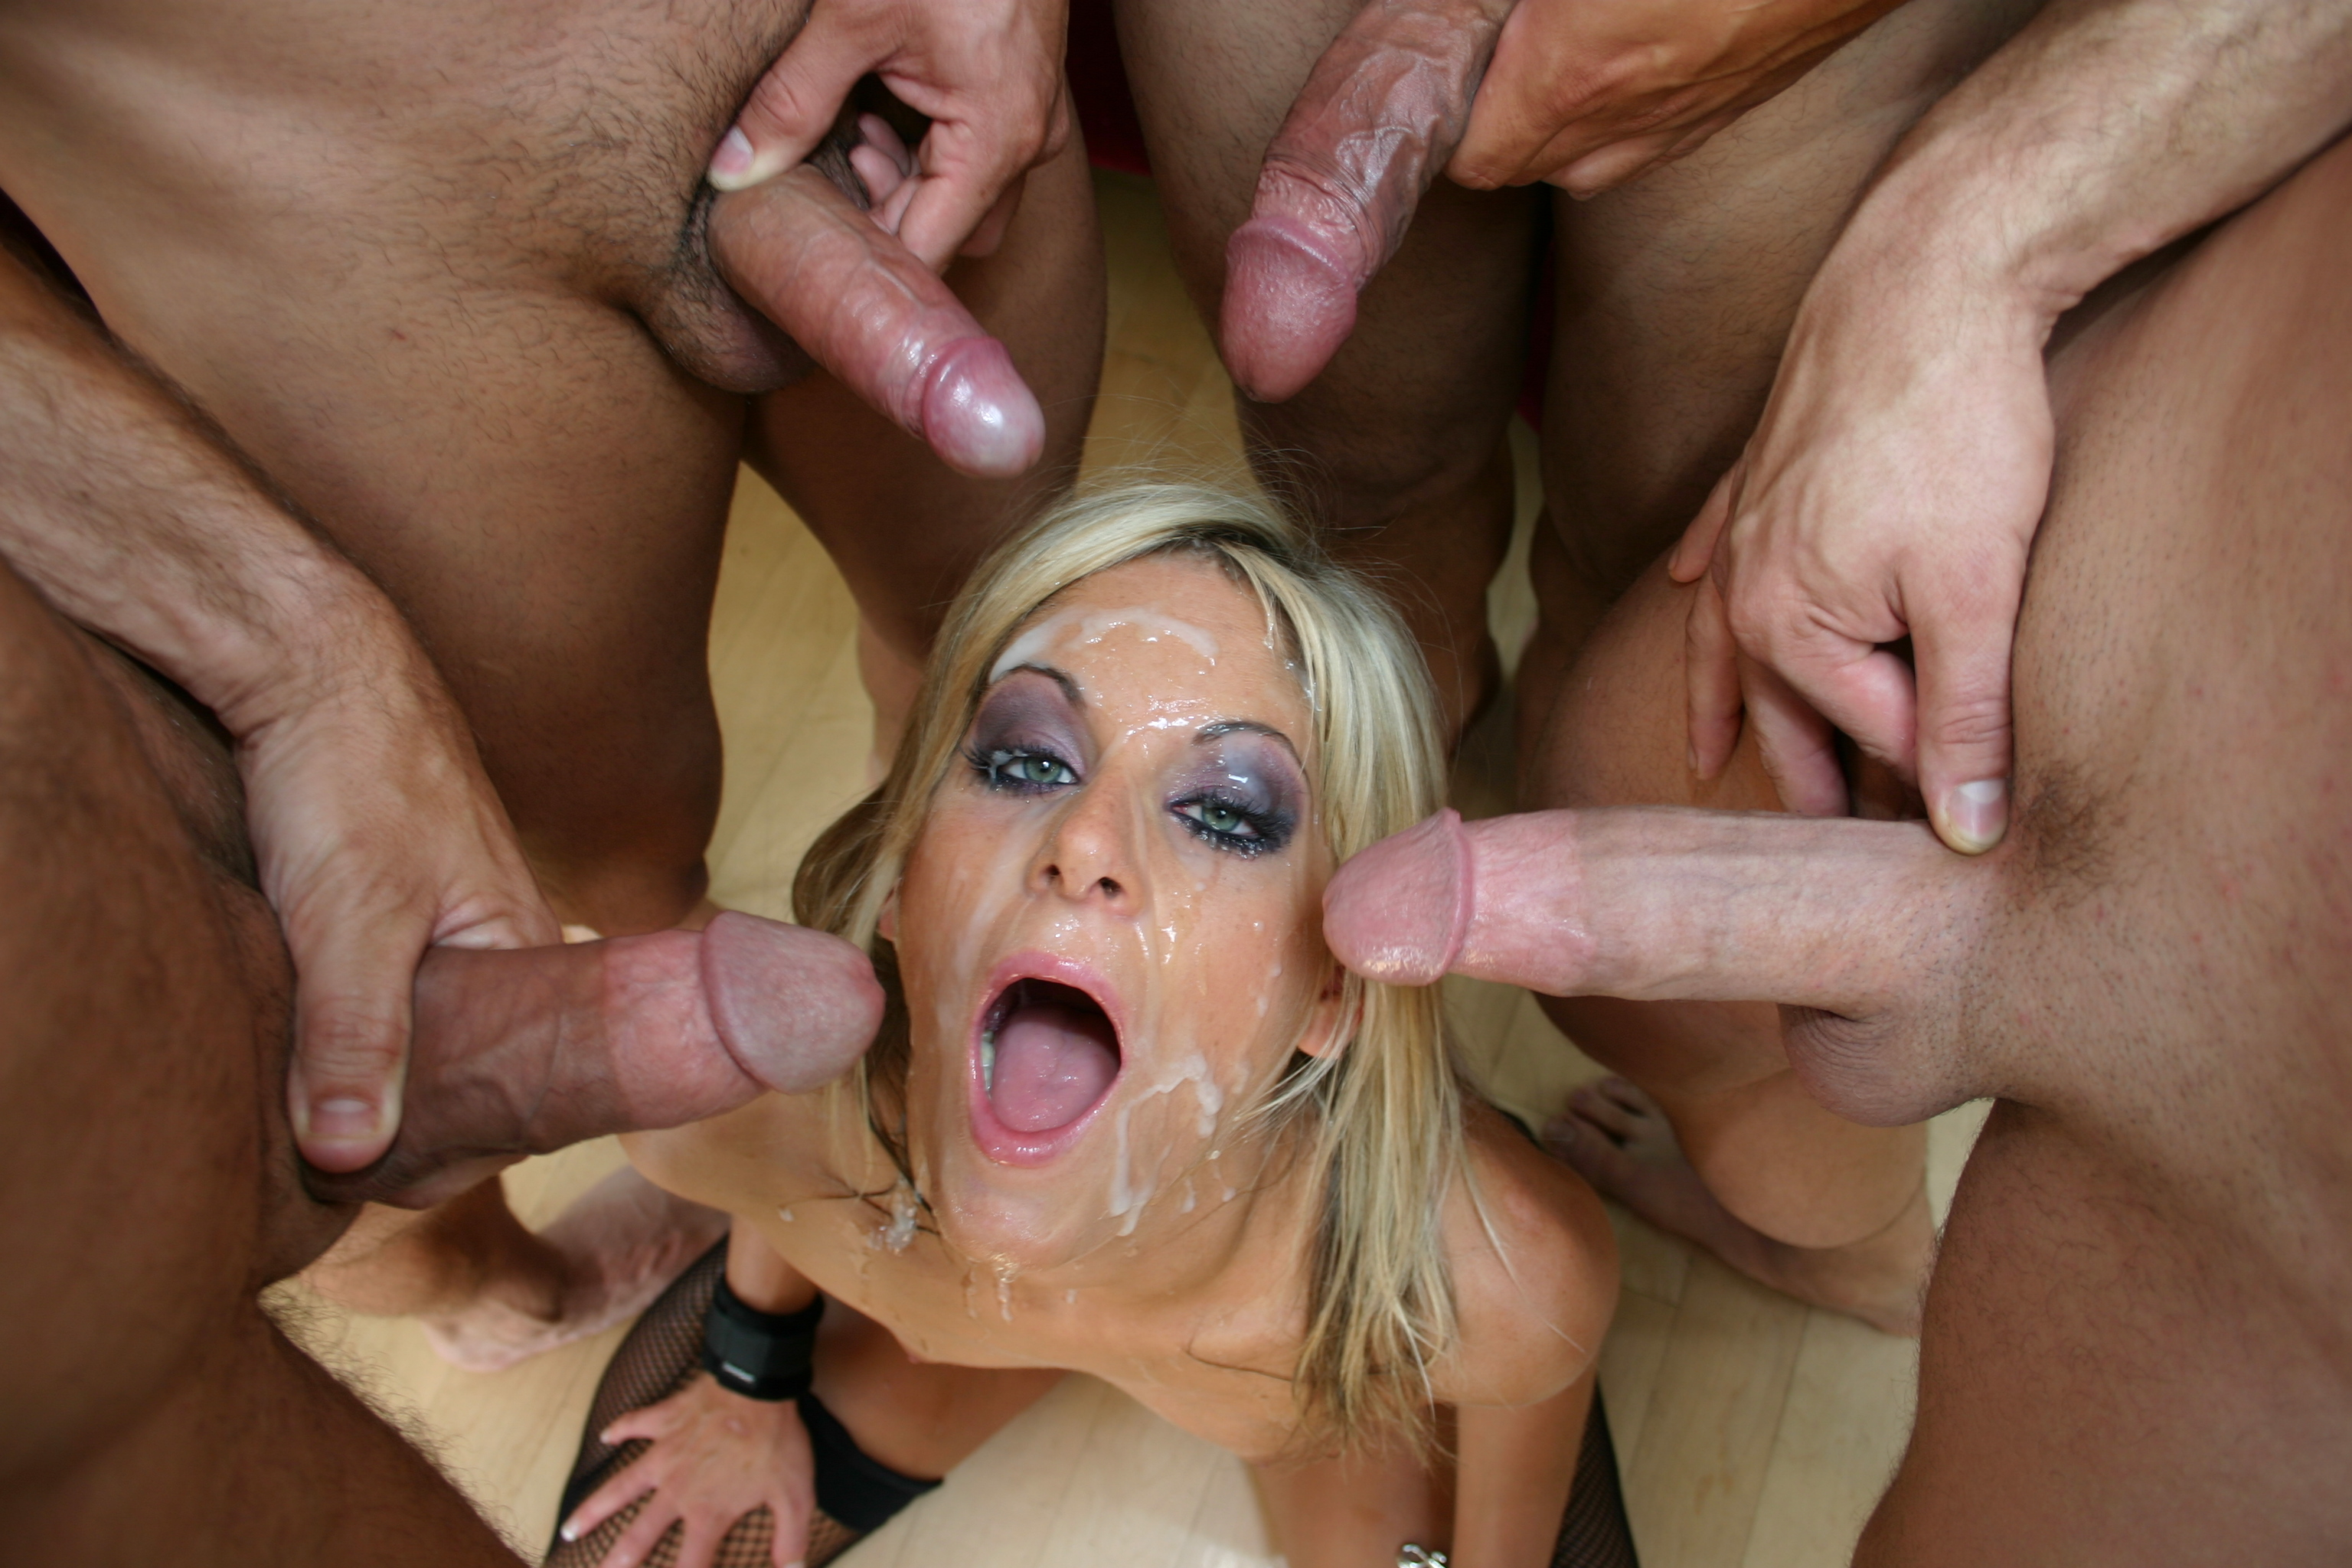 with spanking slut blowjob dick and fuck think, that you commit